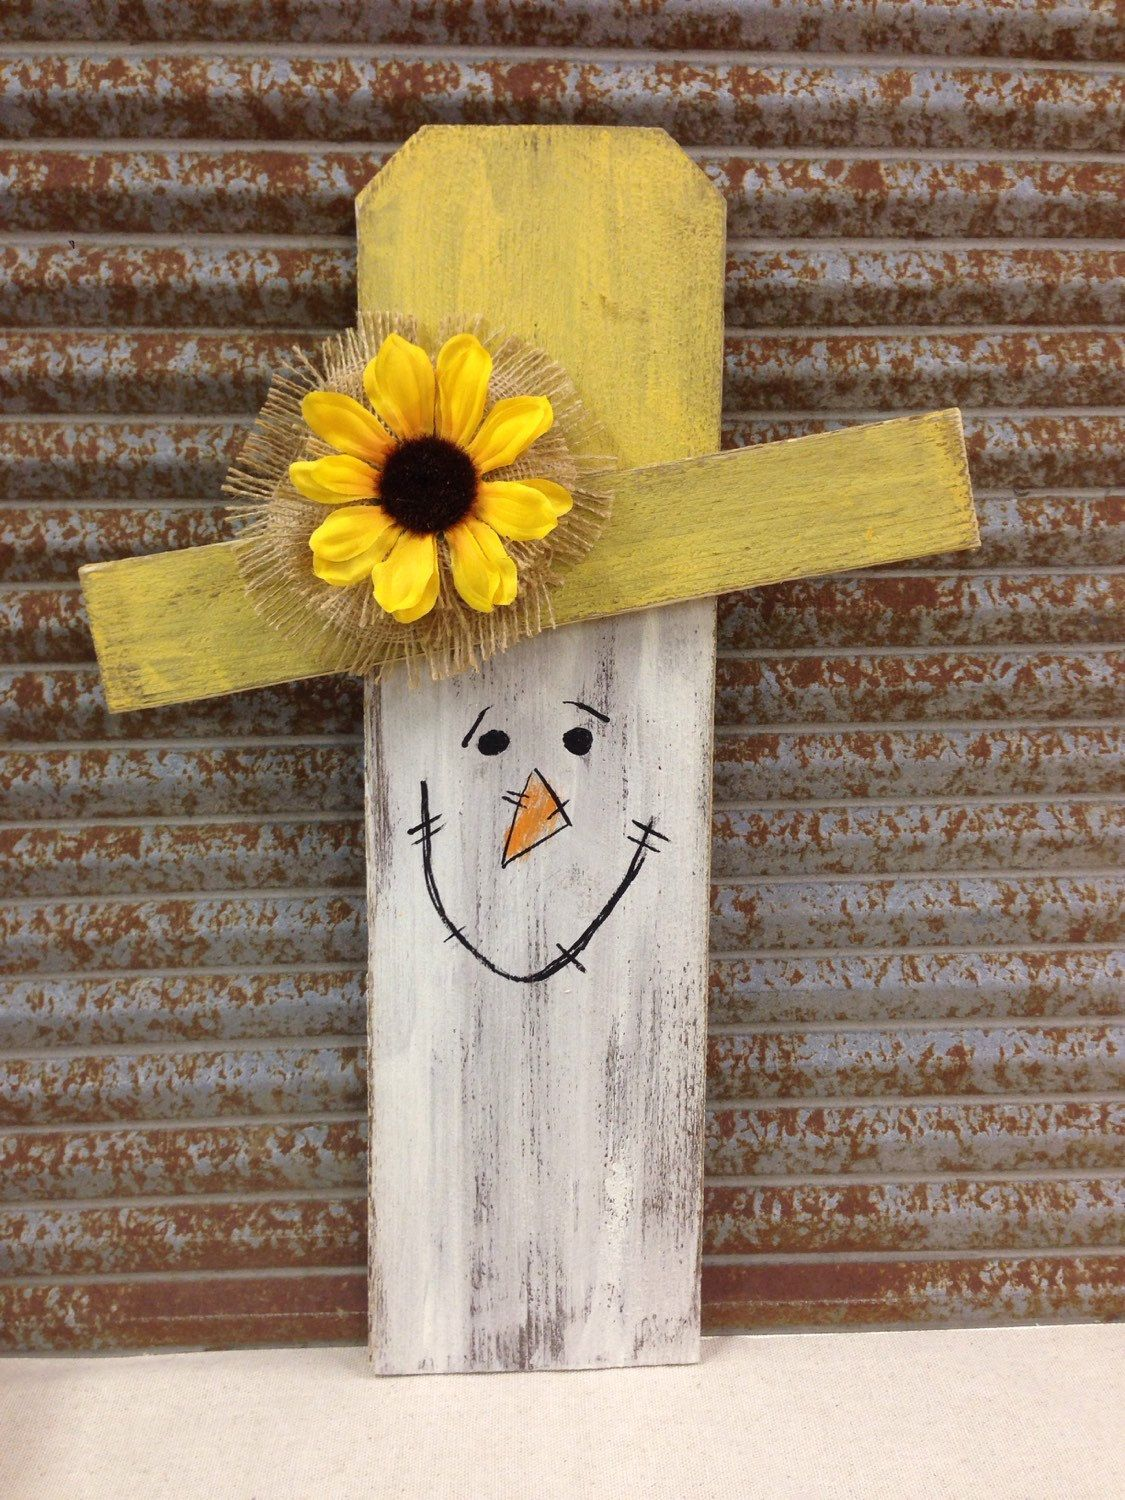 Wood Scarecrow Handmade With Hand Painted Face Sunflower With